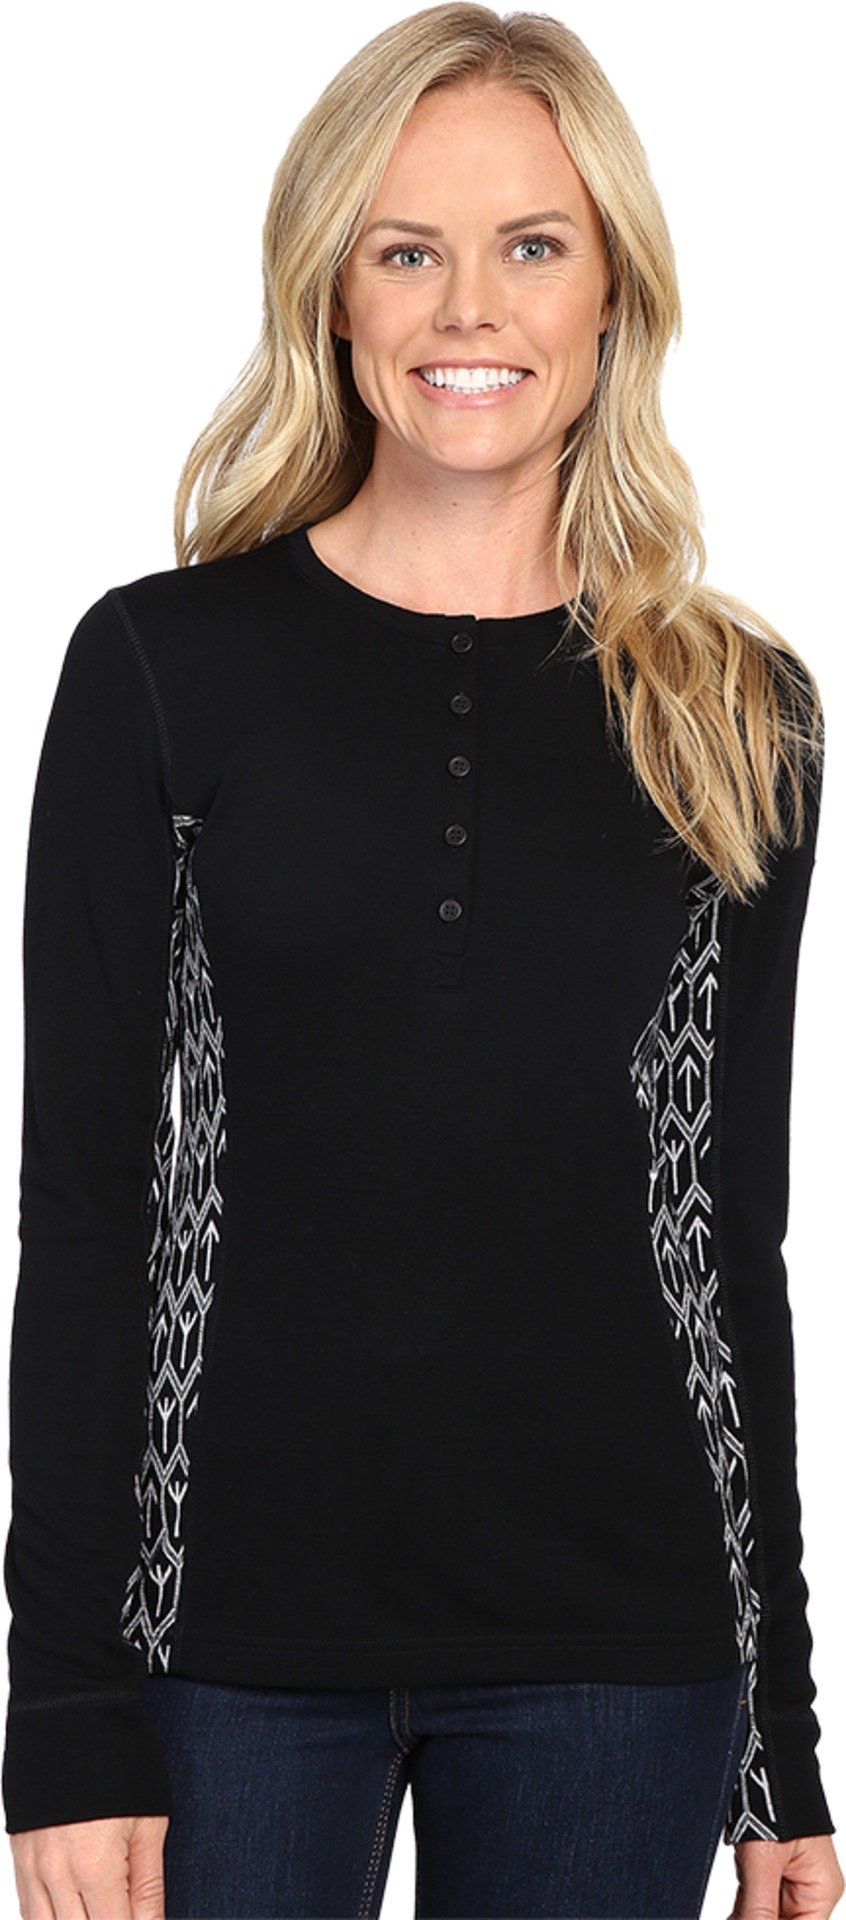 Dale of Norway Women's Viking Basic Sweater Black Sweater SM (Women's 4-6)